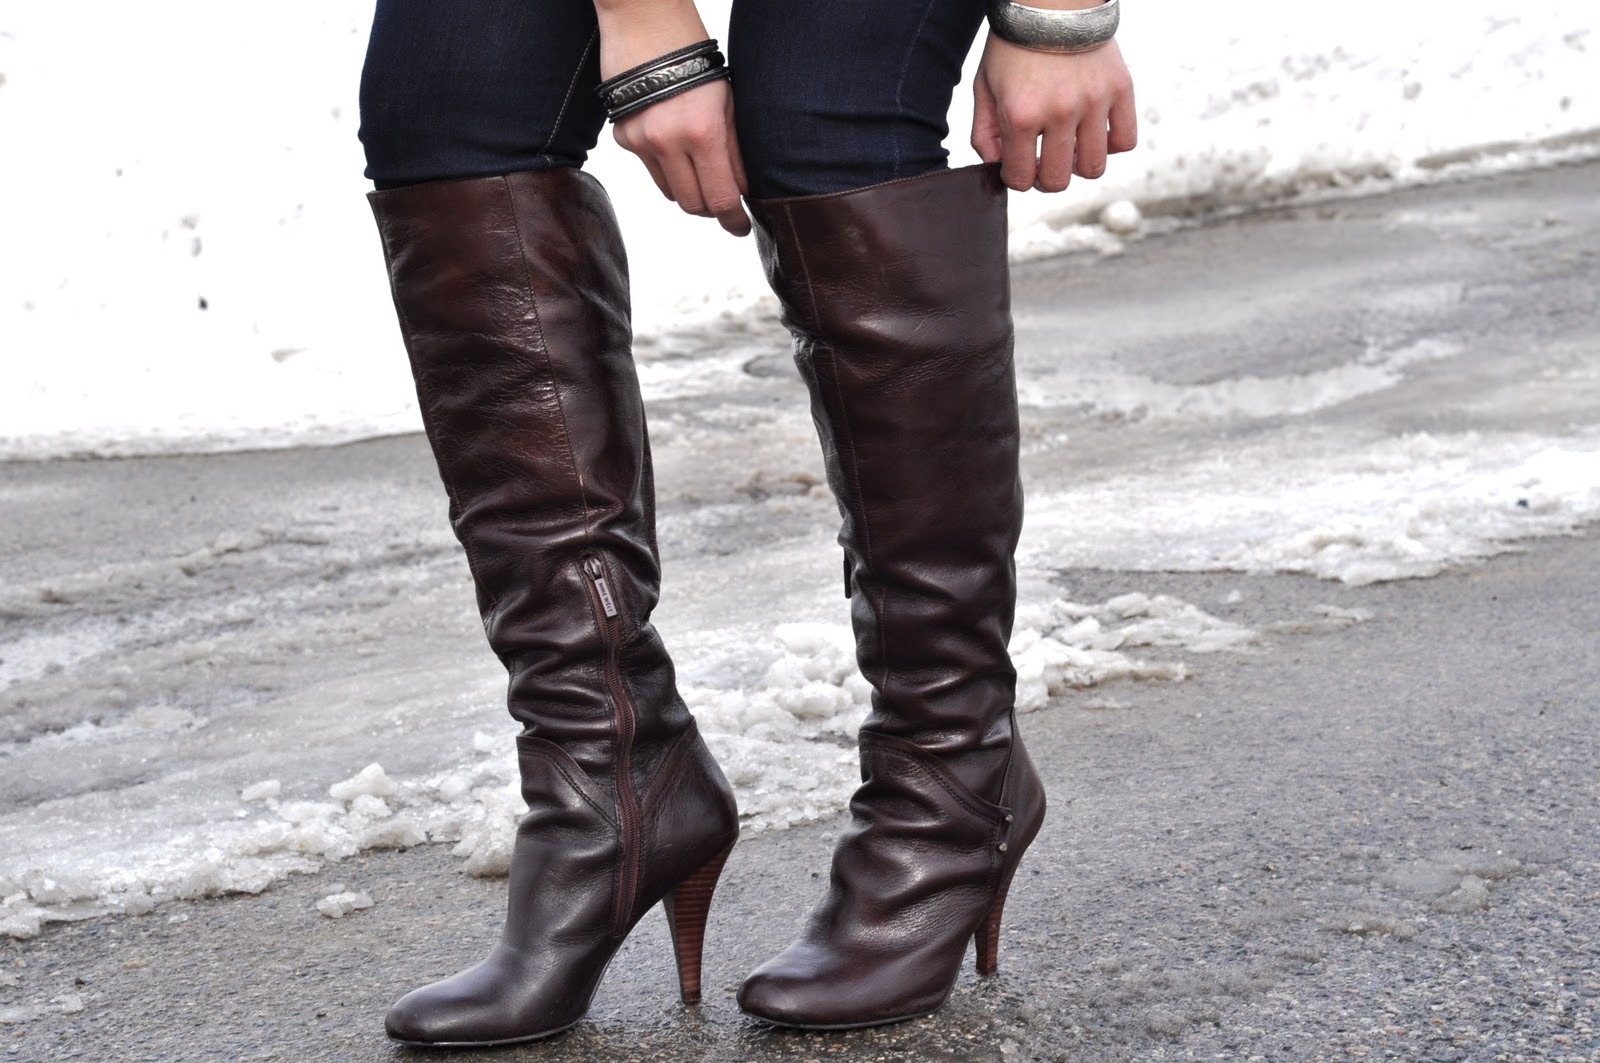 0343b0786e57 Naina Singla - fashion stylist and style expert - Blog - Reader Request   What to Wear With Tall High Heel Boots